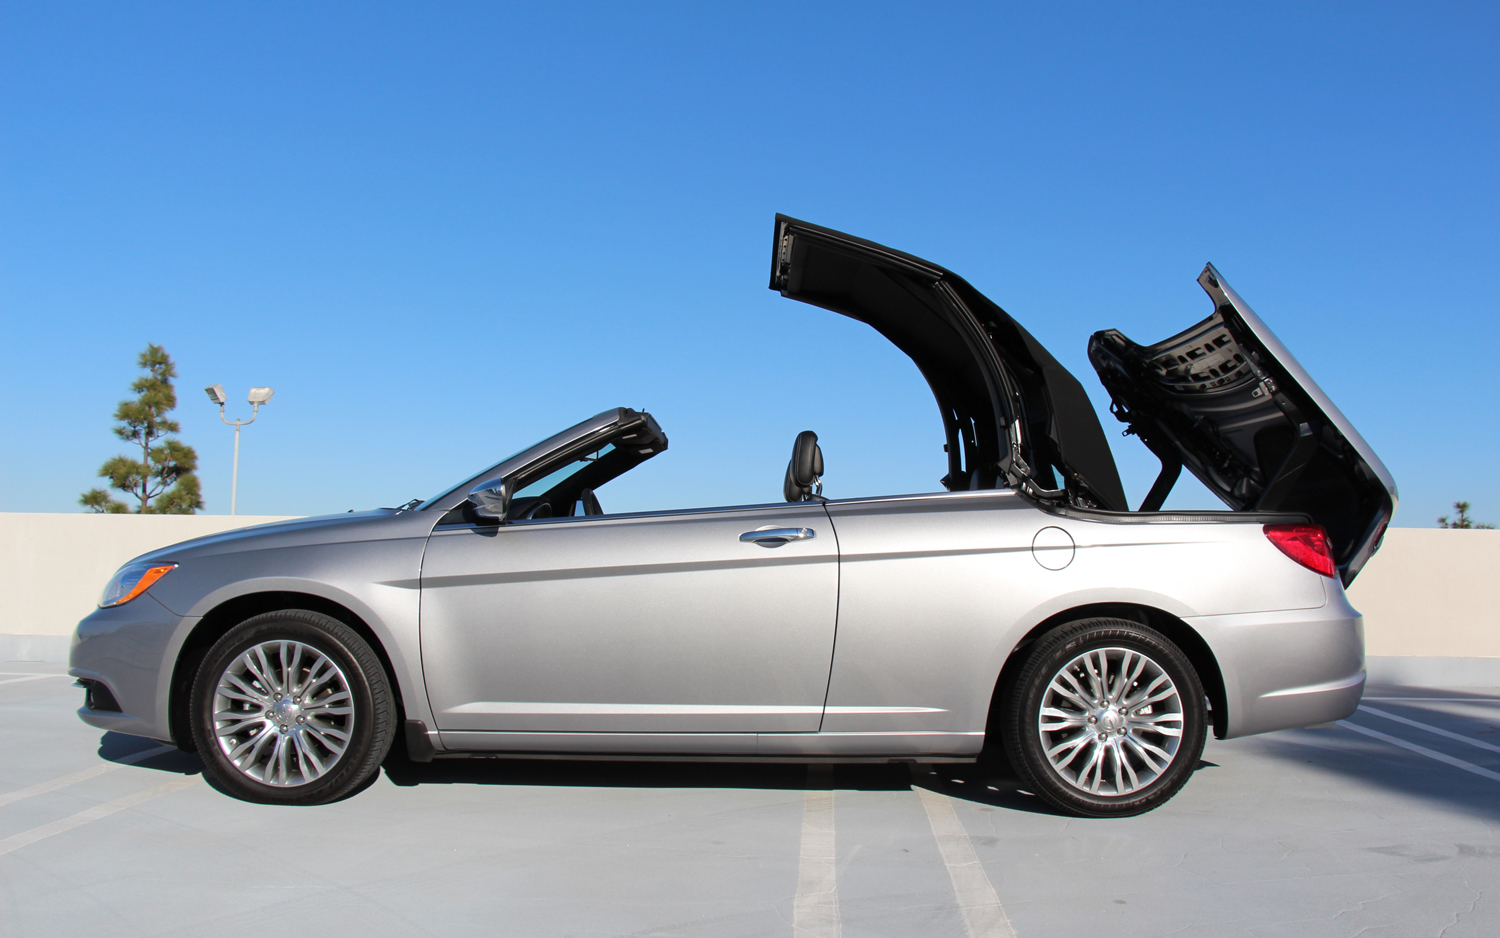 thru deflector screen drive com convertible love chrysler windscreen trade deflectors as also are dp amazon the known wind